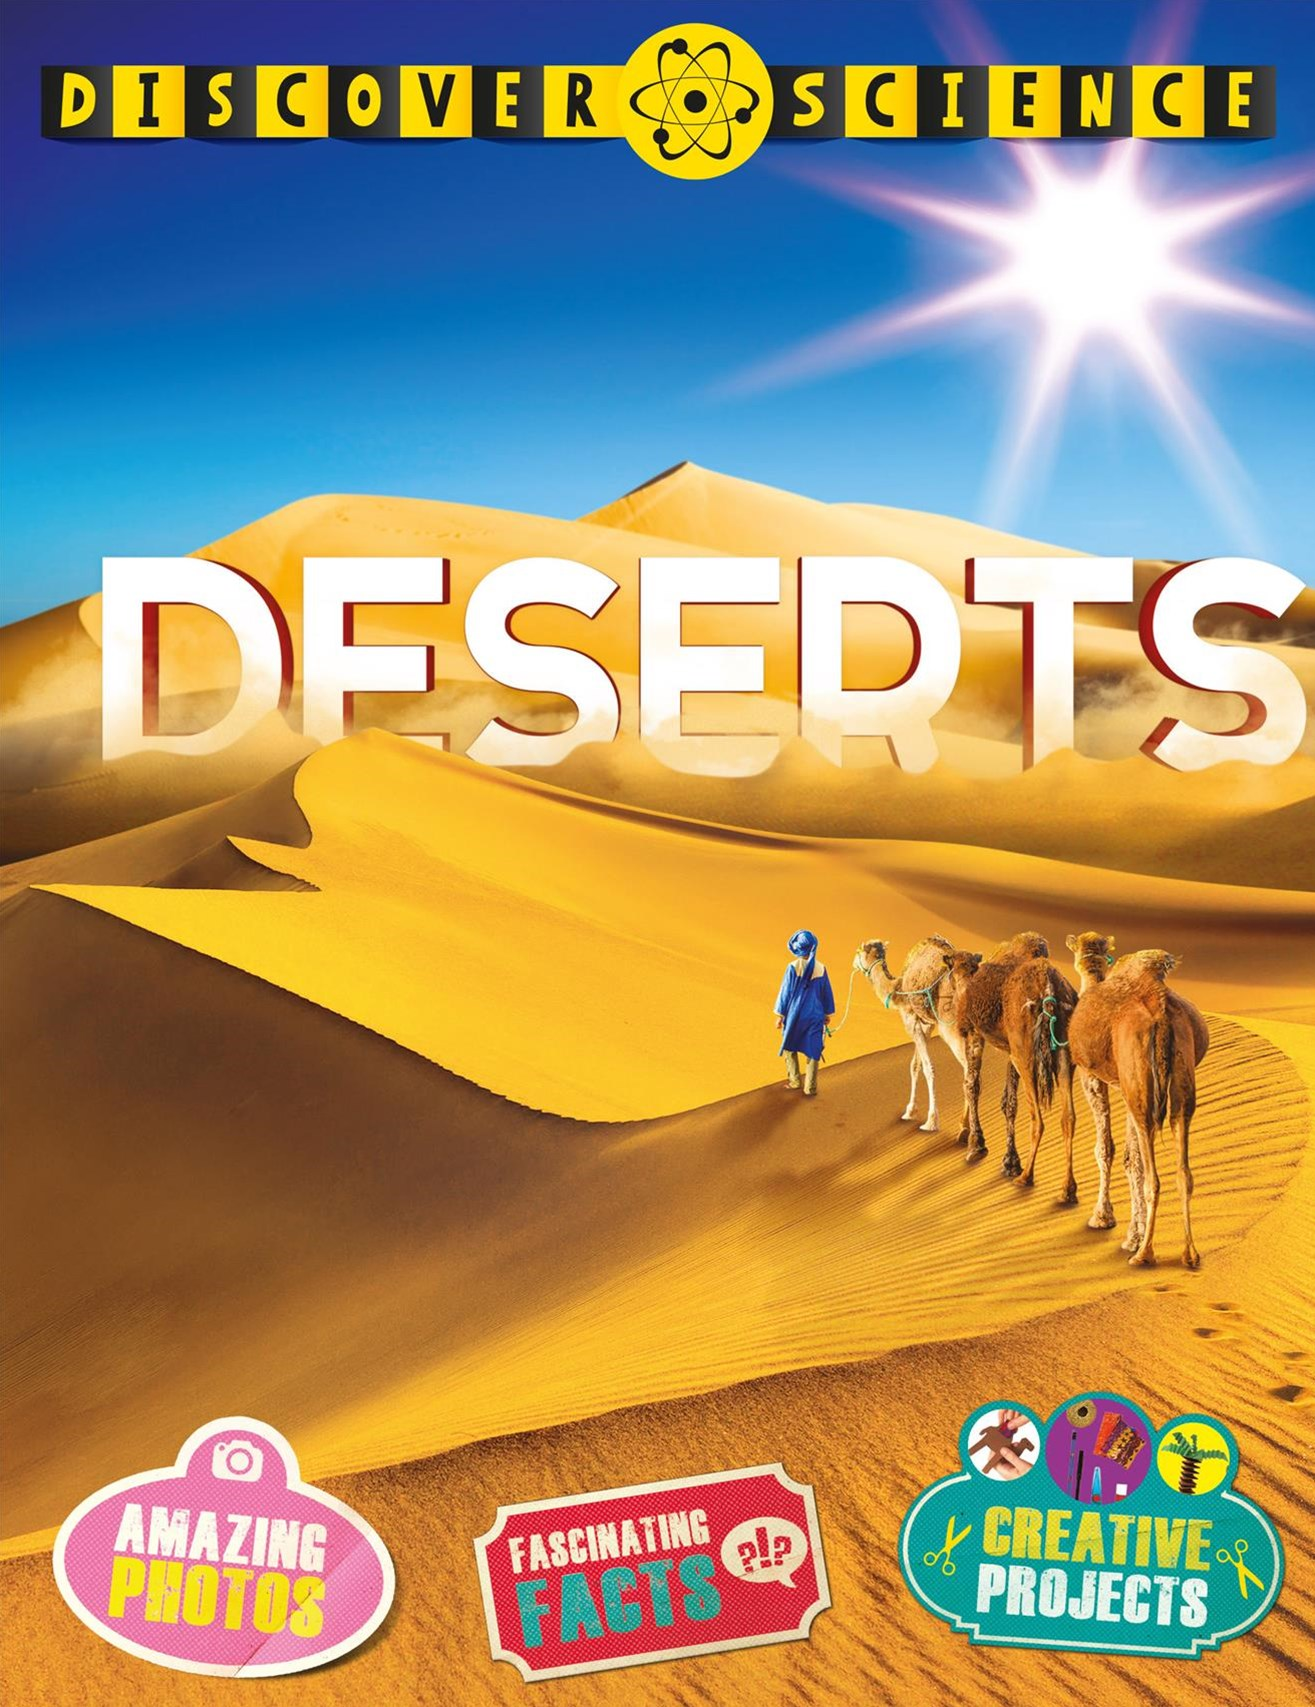 Discover Science - Deserts